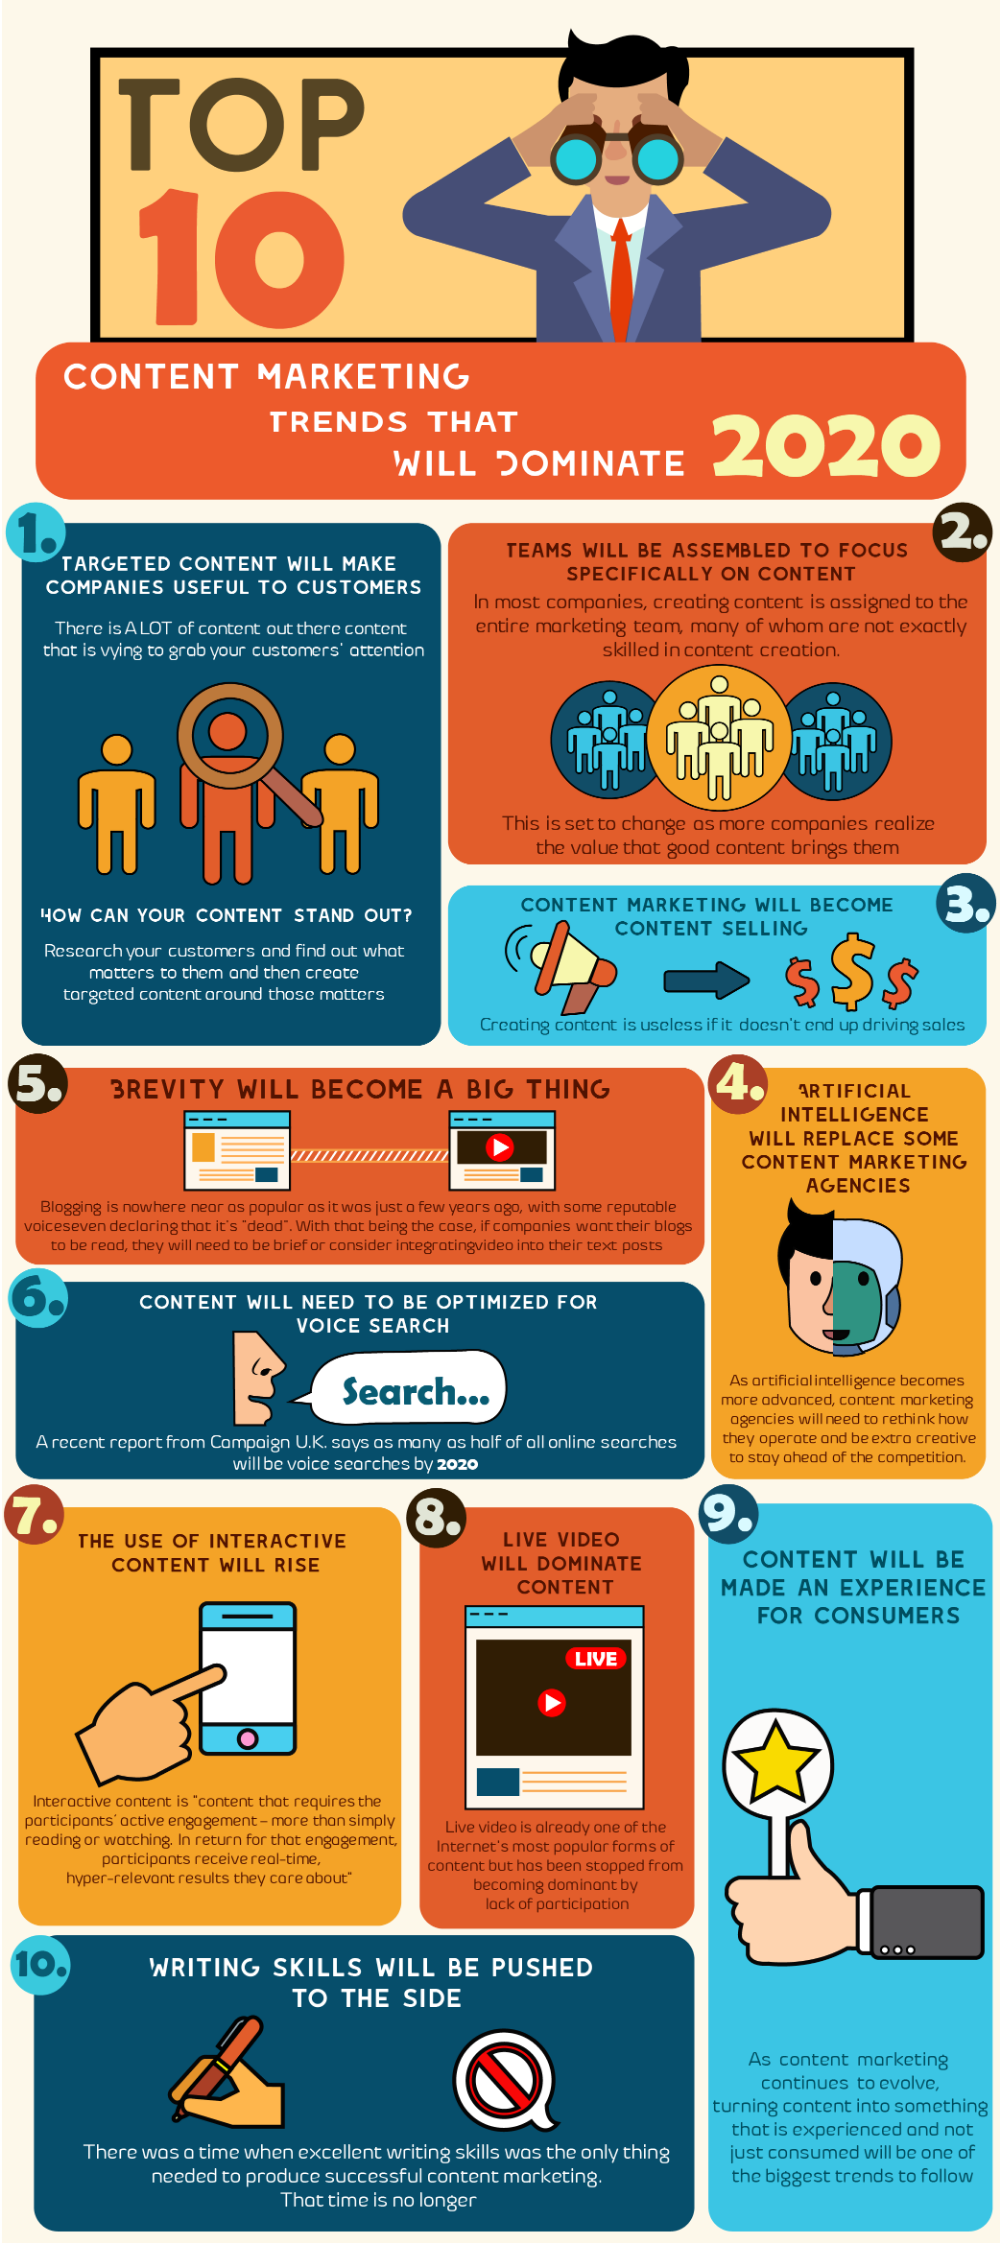 Top 10 Content Marketing Trends for 2020 Infographic